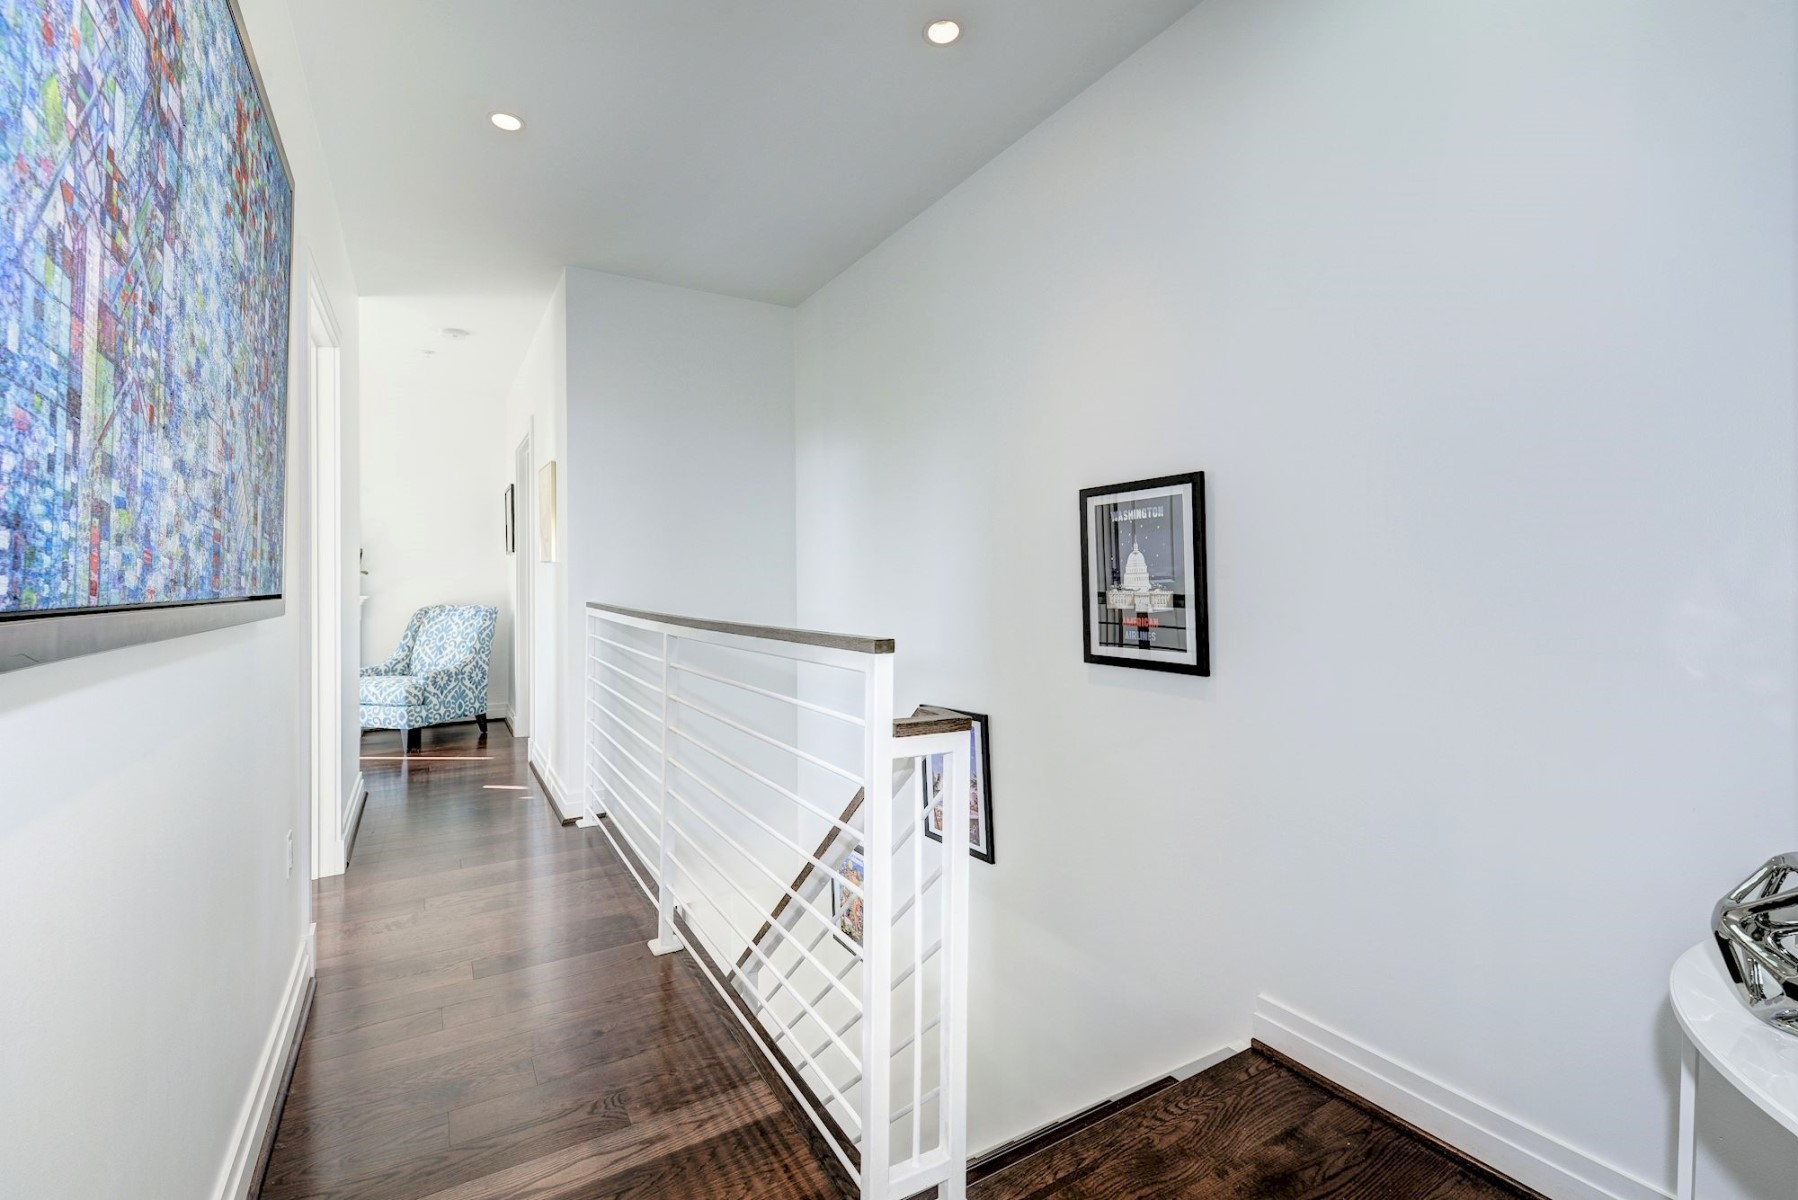 Additional photo for property listing at 3052 R Street Nw 303, Washington  Washington, Distretto Di Columbia 20007 Stati Uniti